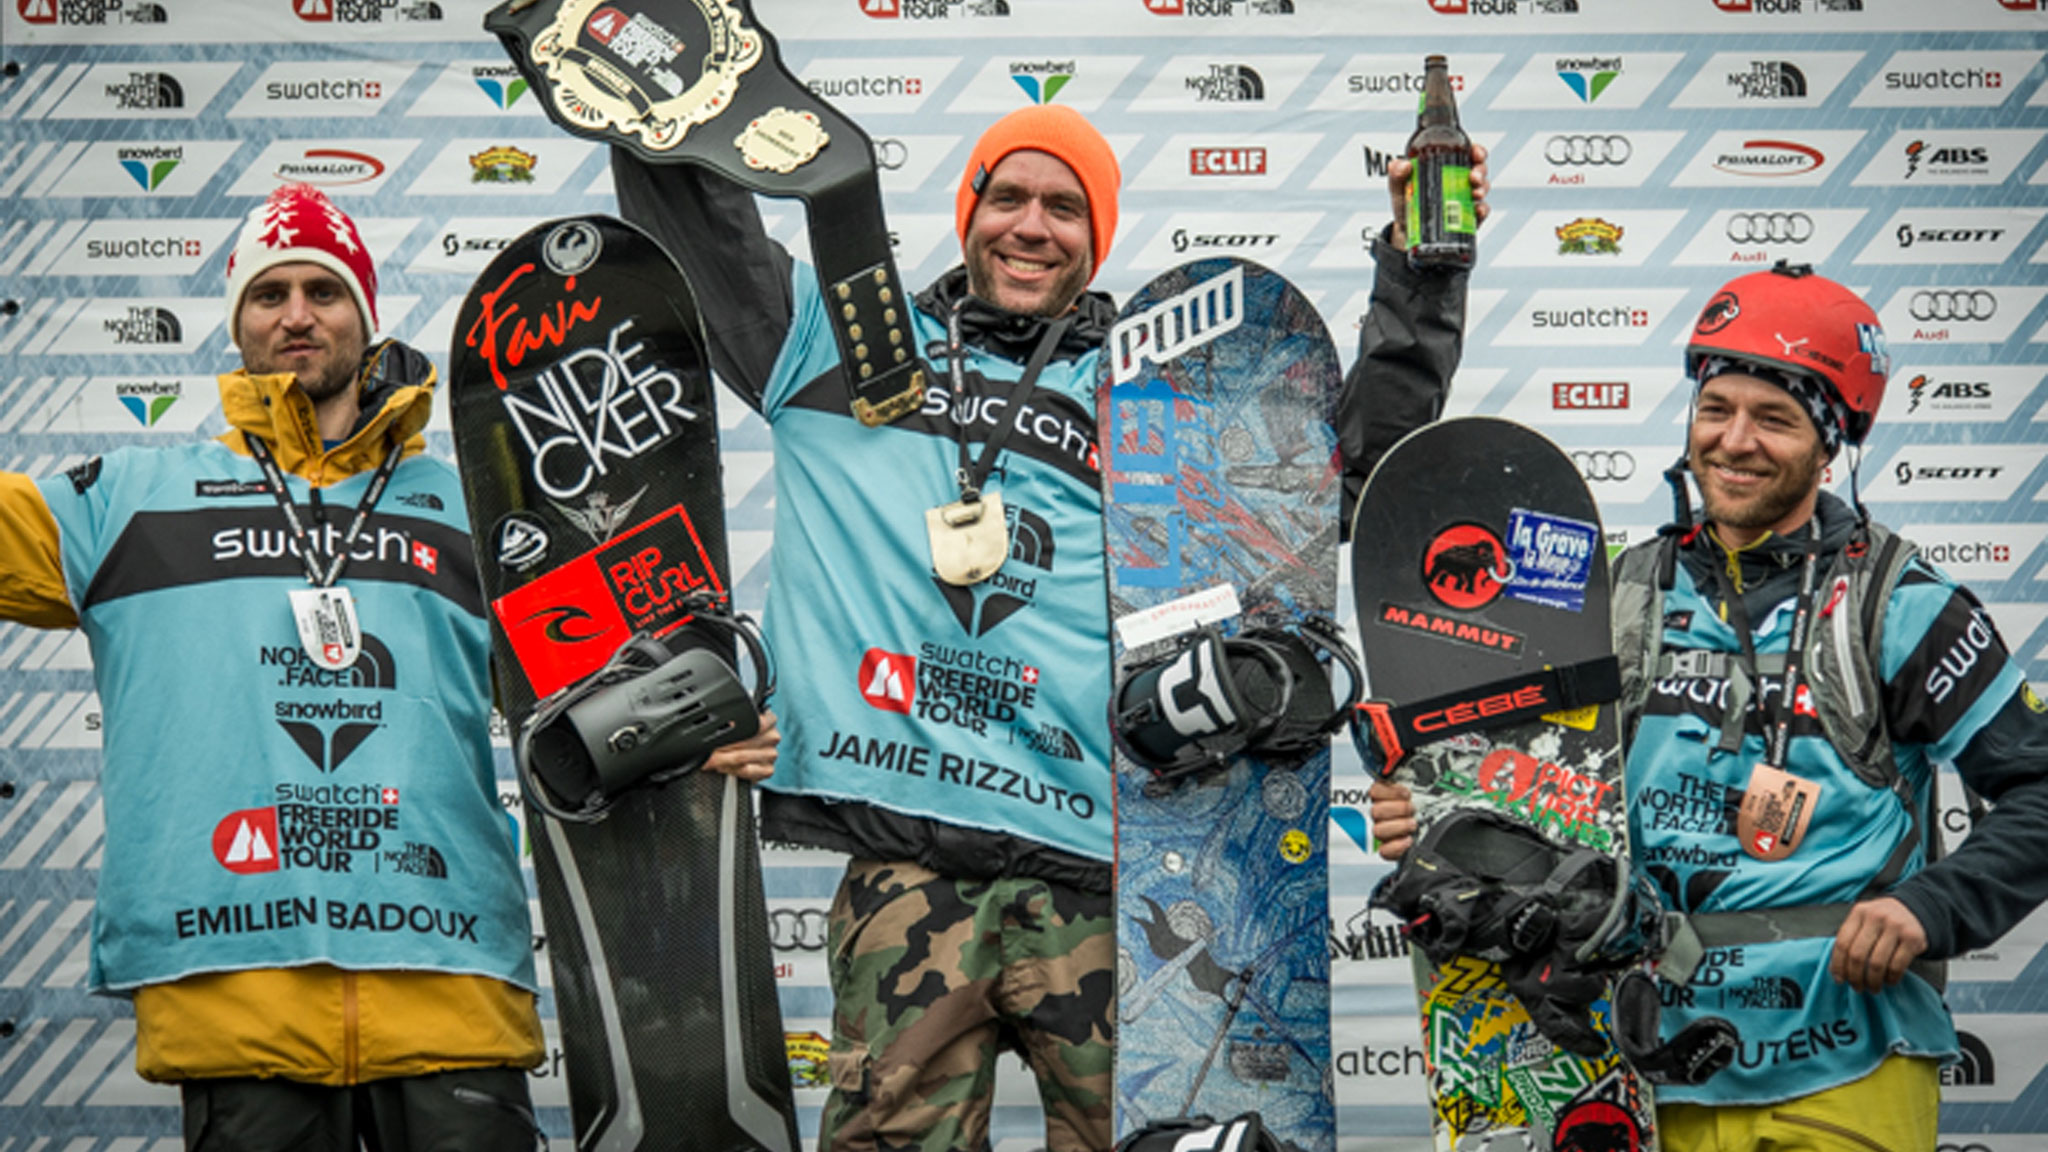 Men's Snowboard Podium